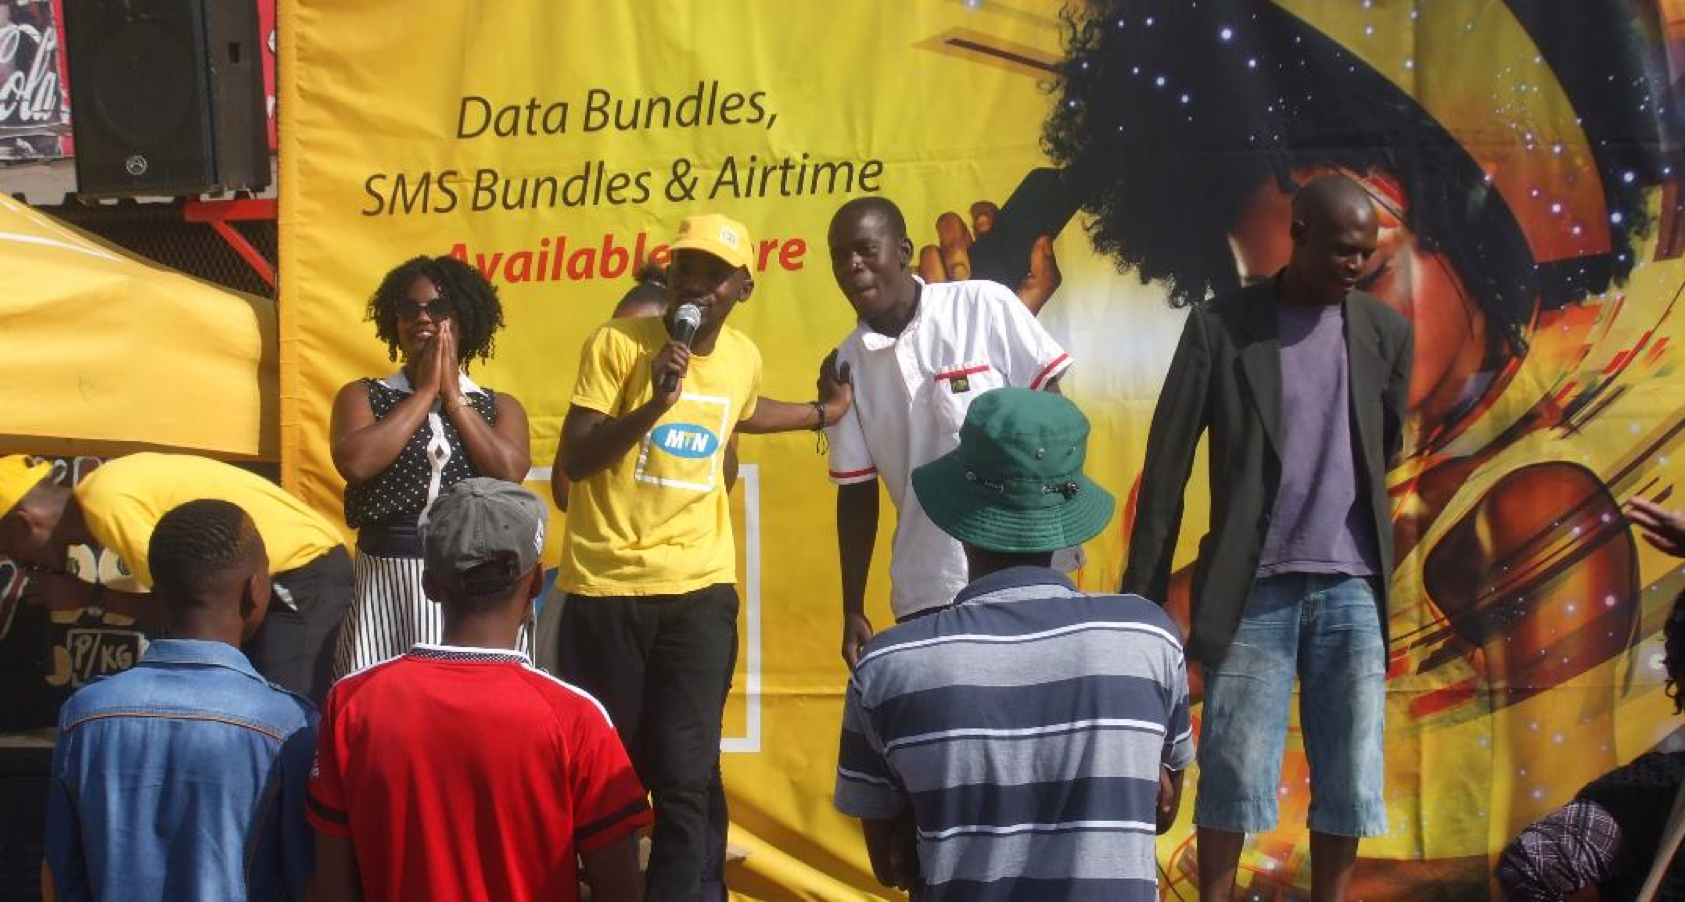 ProActive™ Shoppa Shows continue to drive sales for MTN